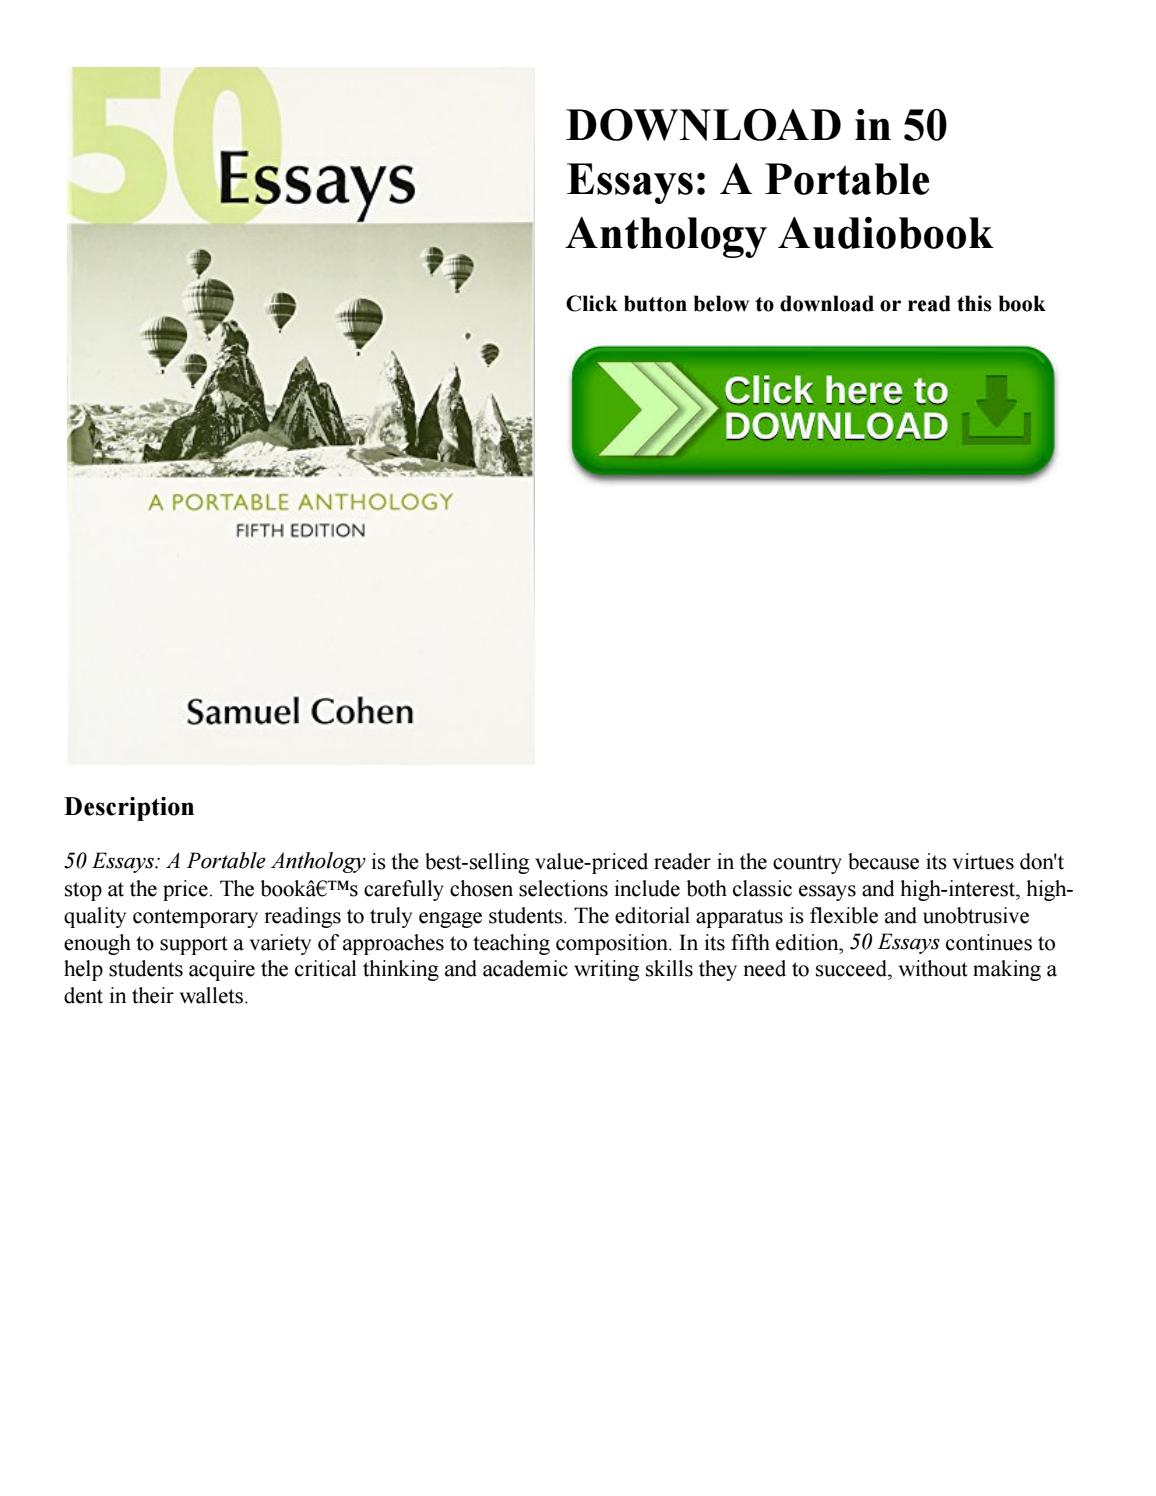 006 Essays 5th Edition Essay Example Page 1 Imposing 50 Fifty Great Pdf Free A Portable Anthology Ebook Full